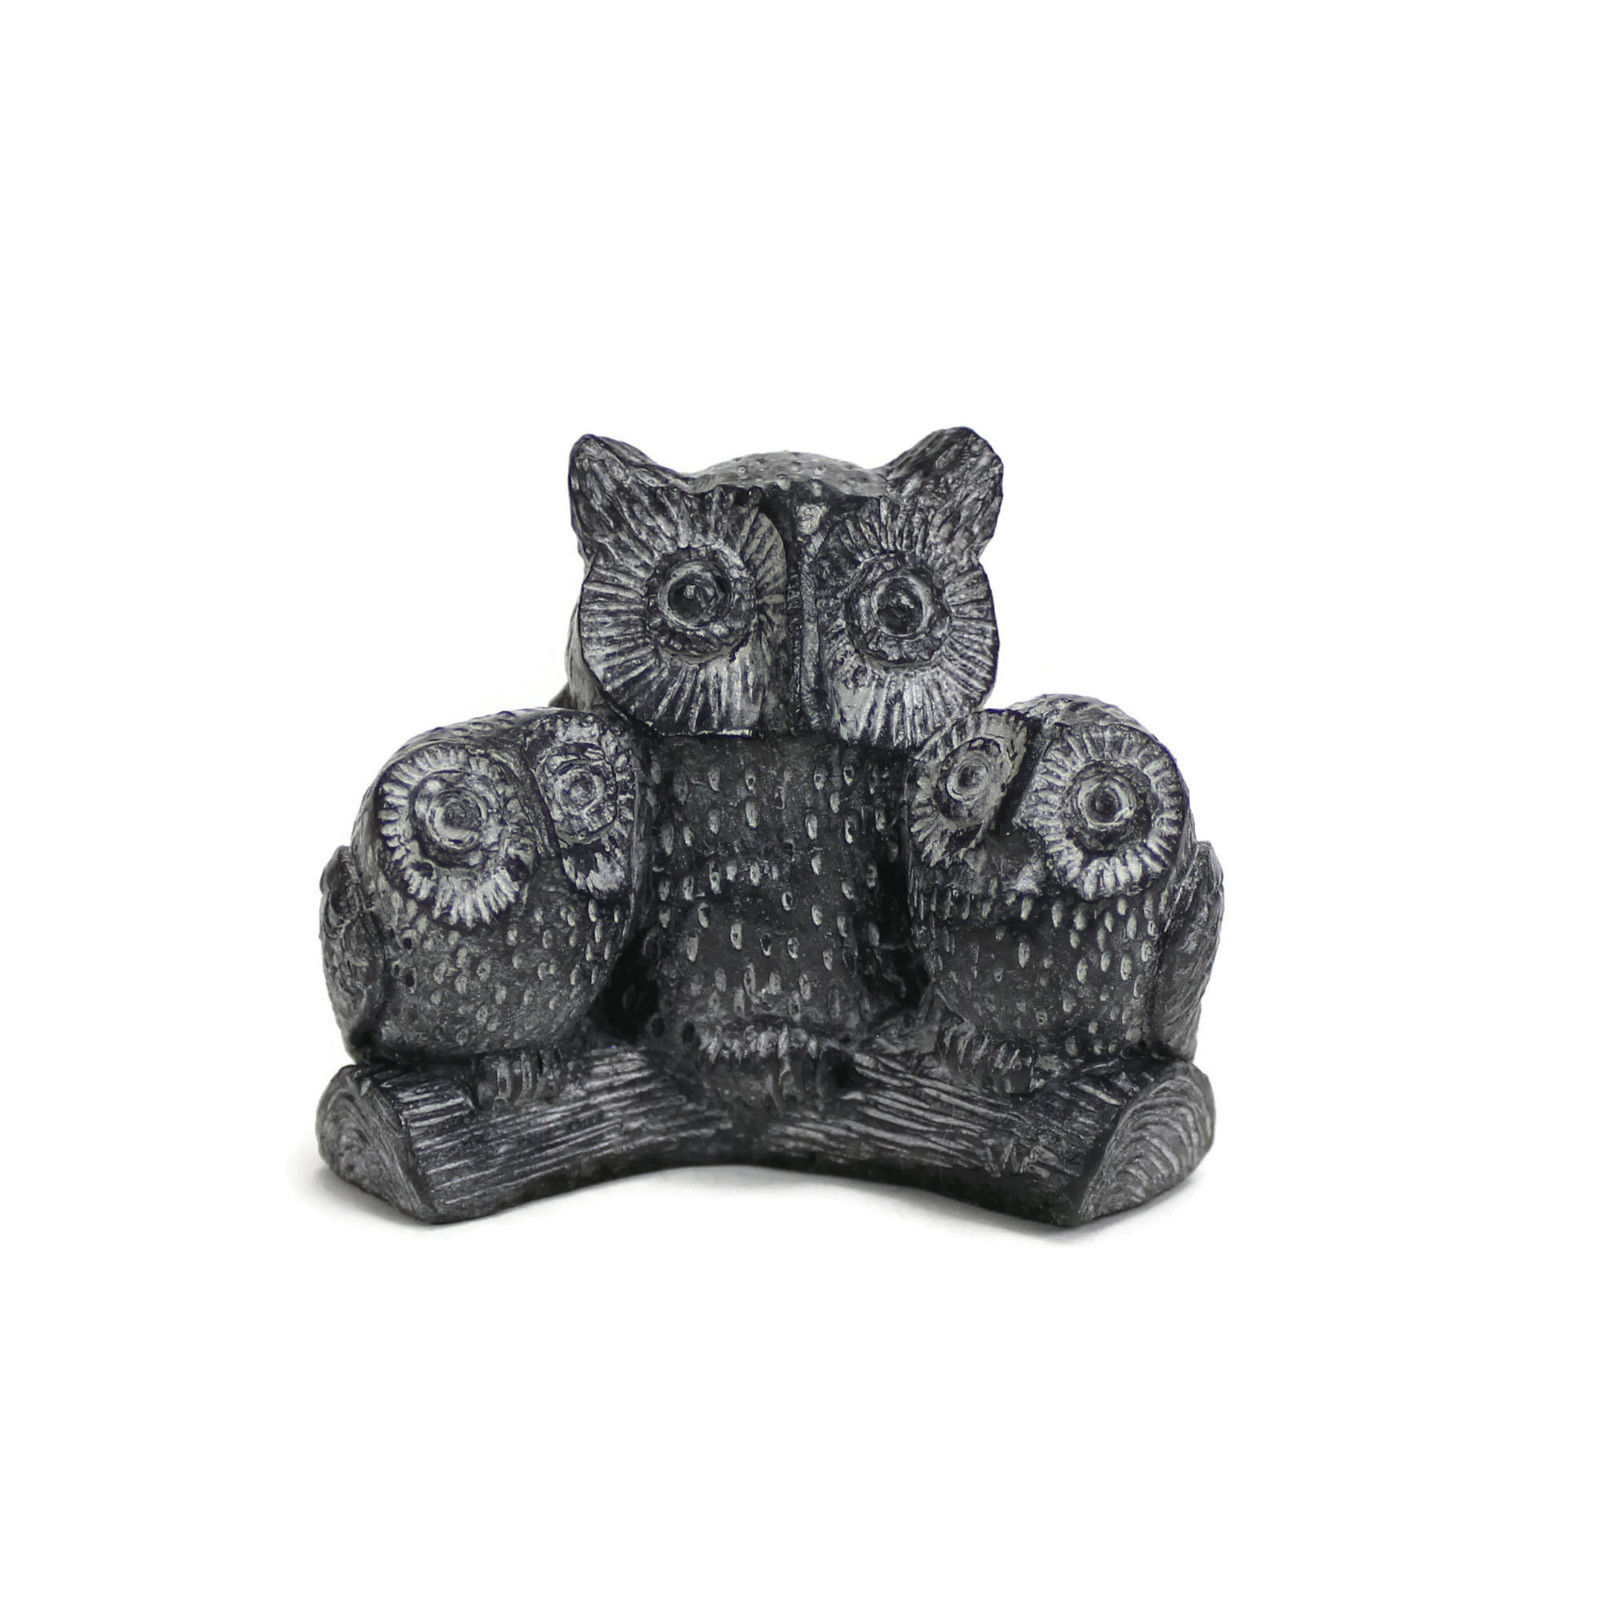 THREE OWLS ON A BRANCH | Mama and Babies | VTG Handmade Wolf Originals | Canada